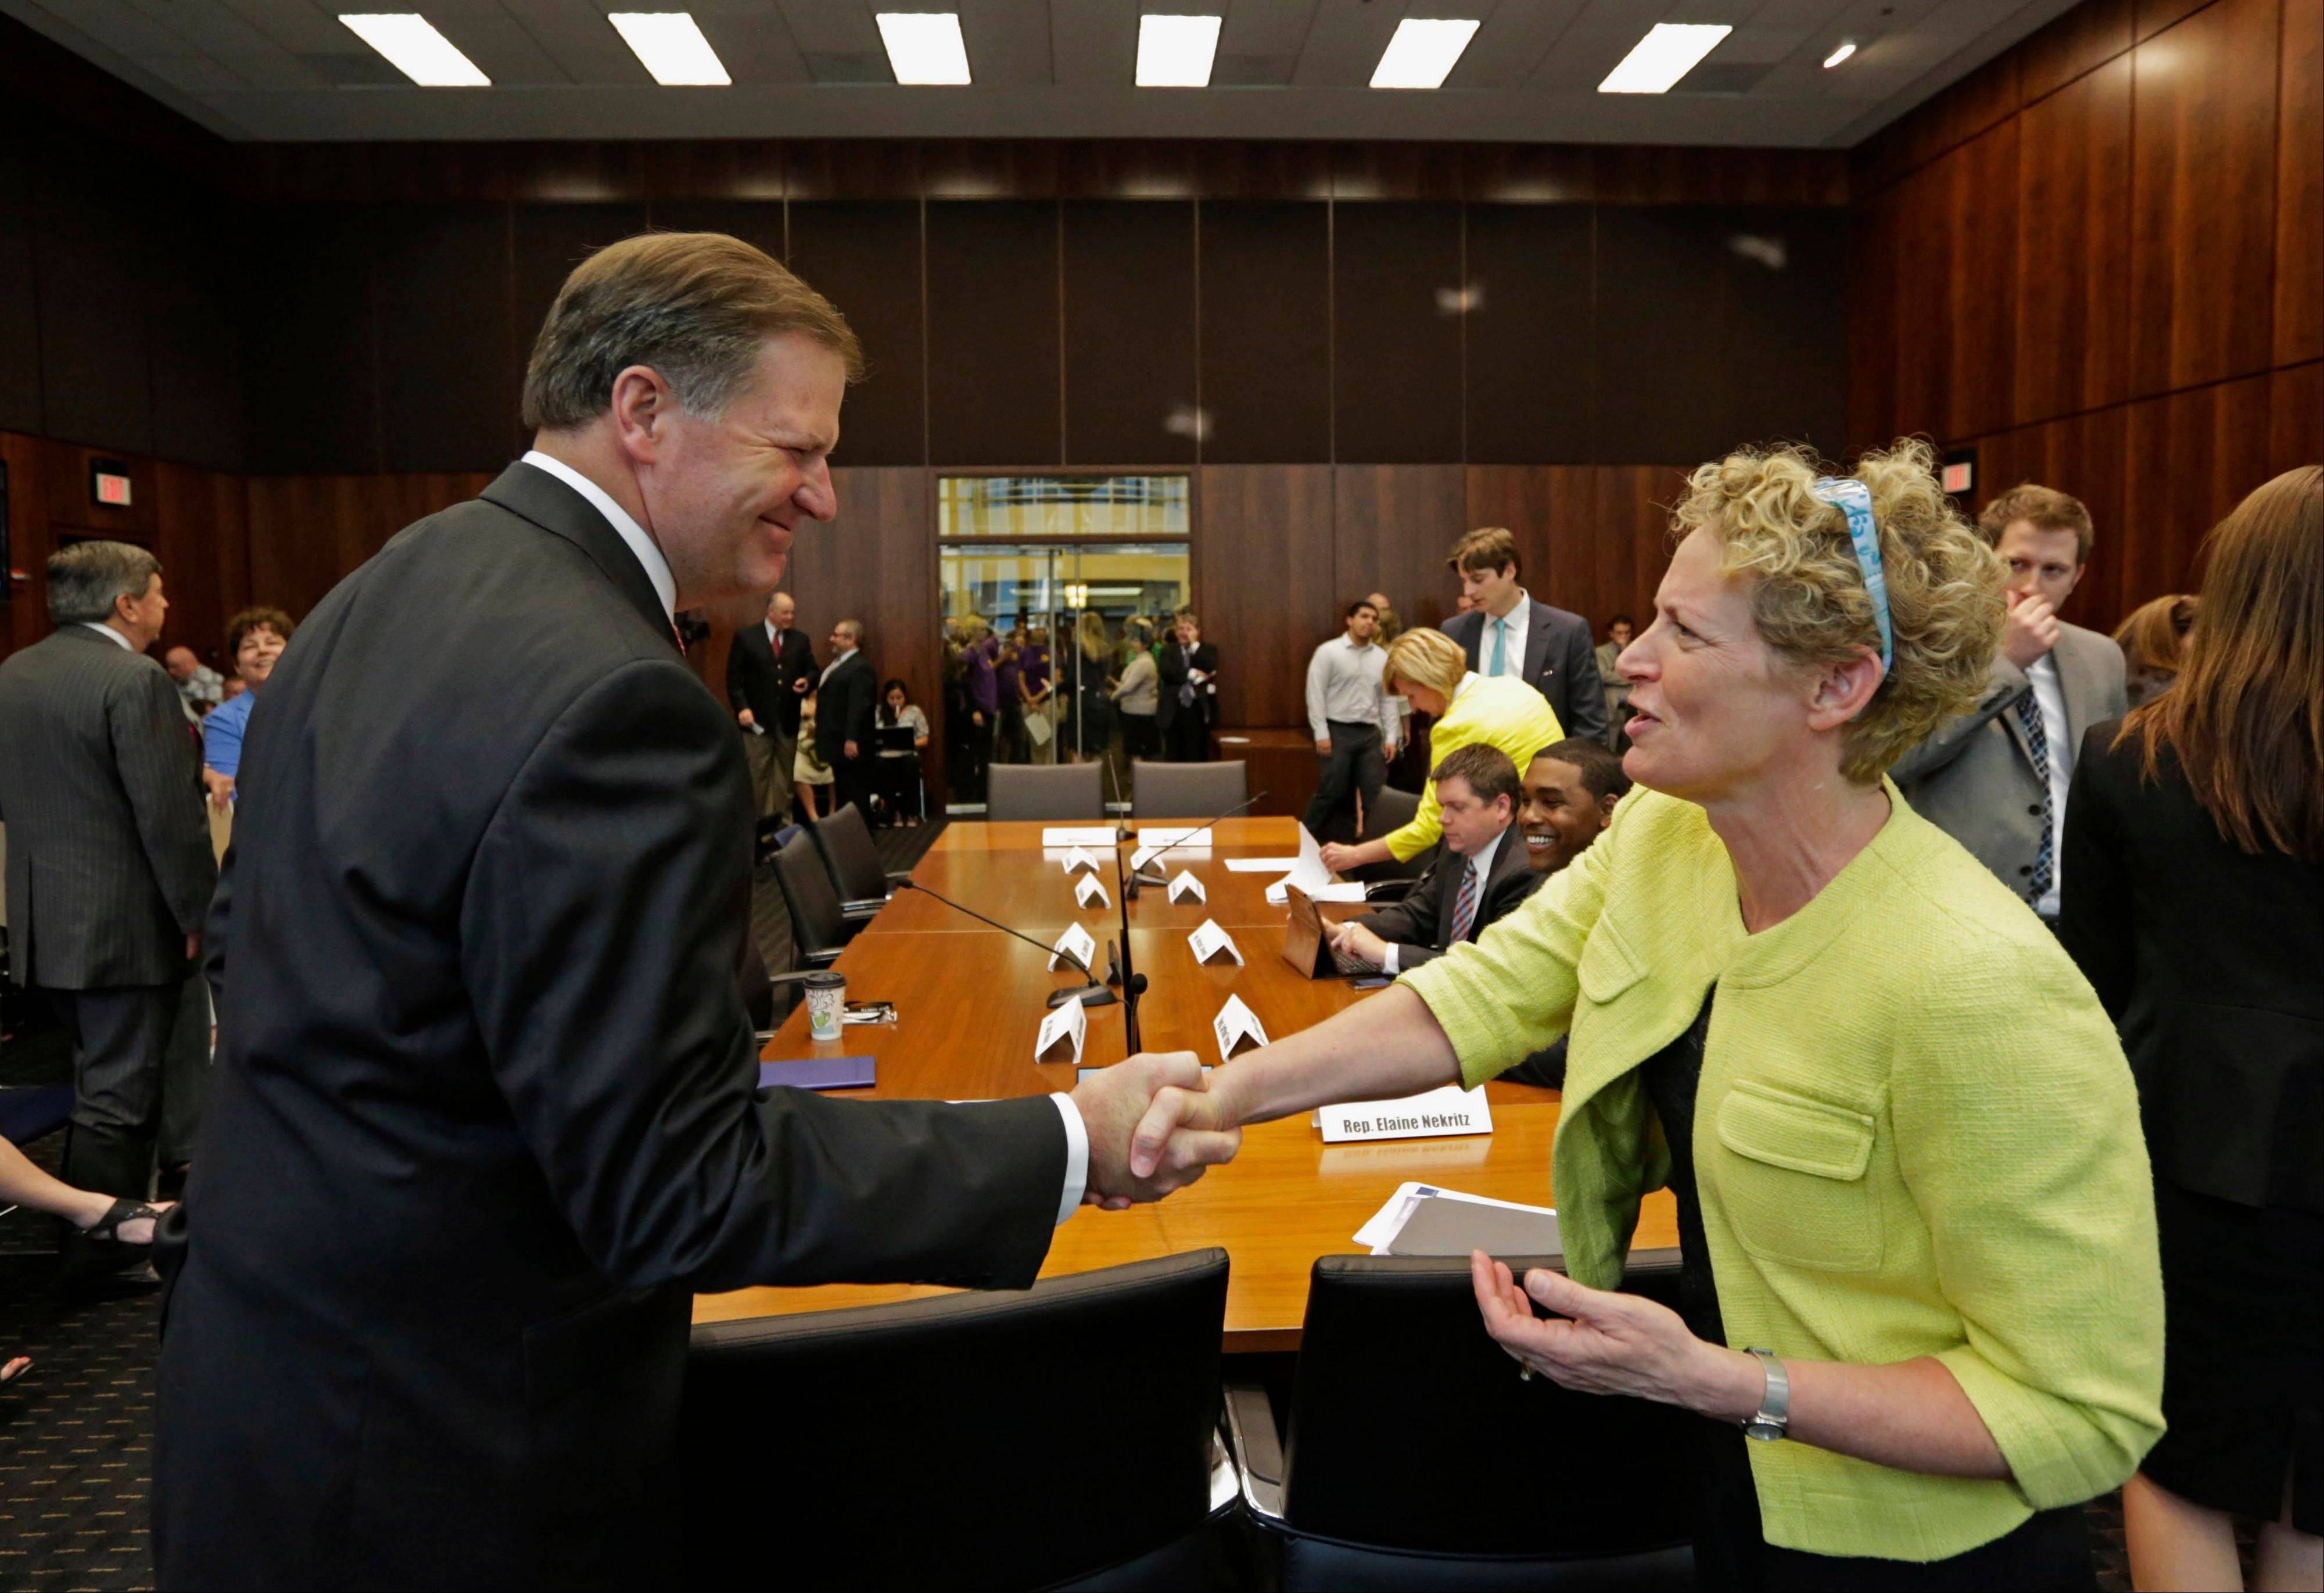 In this June 27, 2013 file photo, Illinois state Sen. Bill Brady, left, and state Rep. Elaine Nekritz of Northbrook, shake hands before apublic pension hearing in Chicago. Lawmakers say they are making progress on a deal to solve Illinois� $97 billion pension crisis, but are not confident there will be a vote as the annual fall legislative session enters its final days beginning Tuesday.